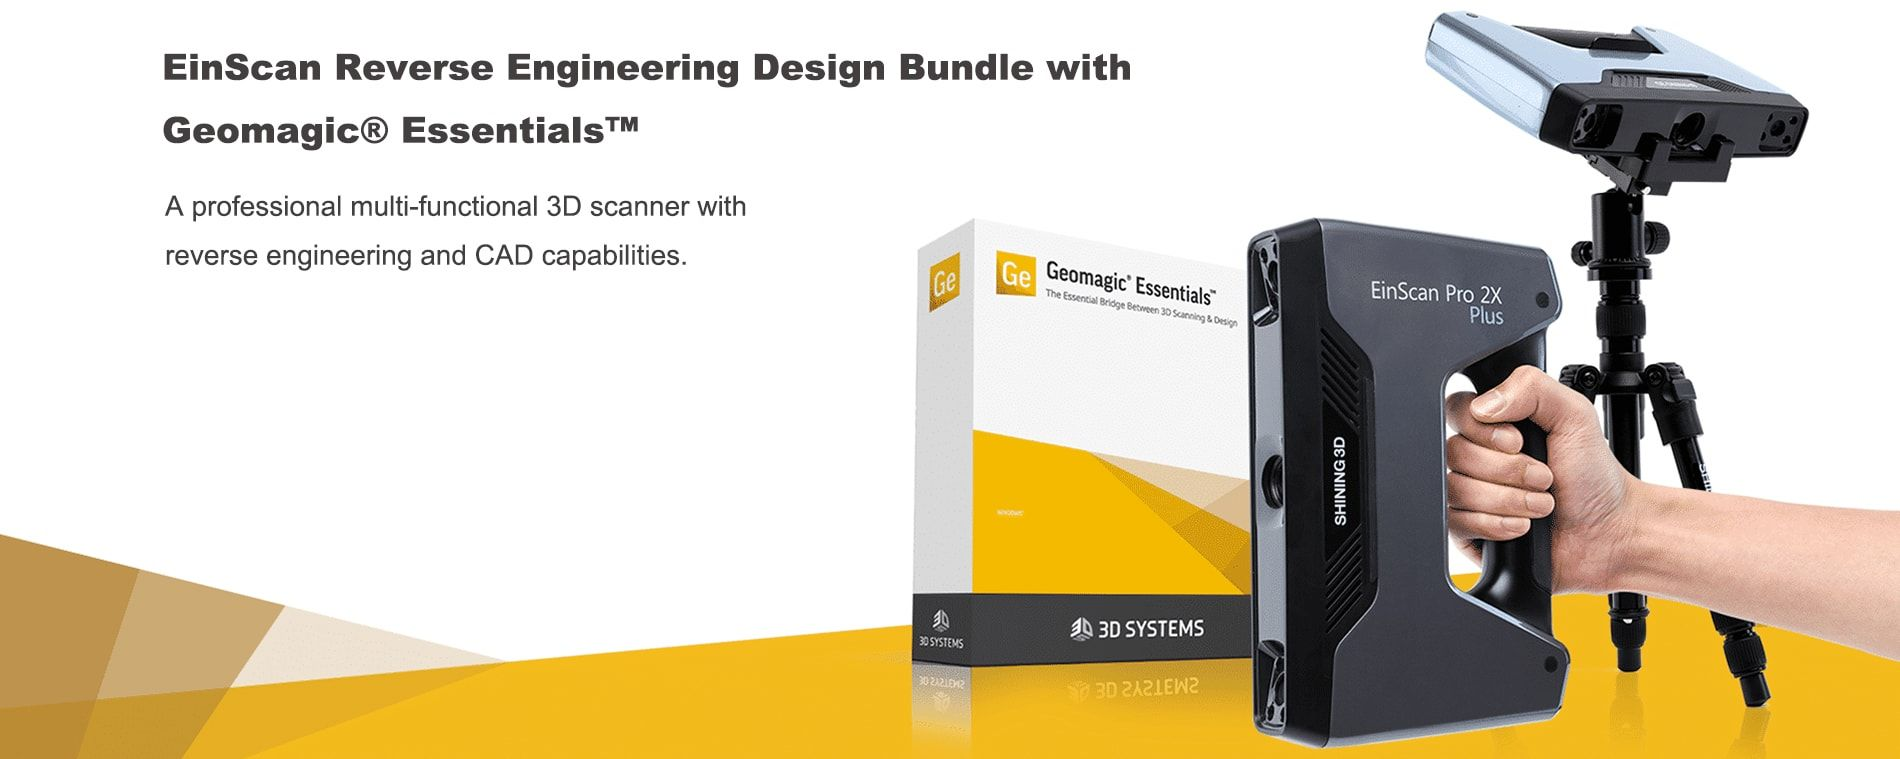 https://www.go3dpro.com/einscan-reverse-engineering-design-geomagic-essentials-bundle.html